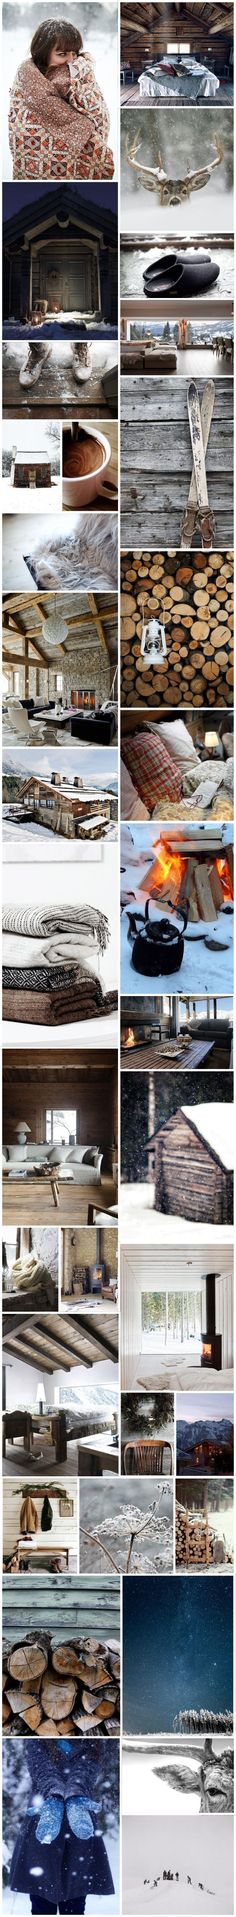 winter cabin 2014 by stylejuicer hygge christmas Casa Hygge, Hygge Life, Hygge House, Winter Cabin, Cosy Winter, Open Fireplace, Winter Wonder, Cabins In The Woods, Winter Christmas